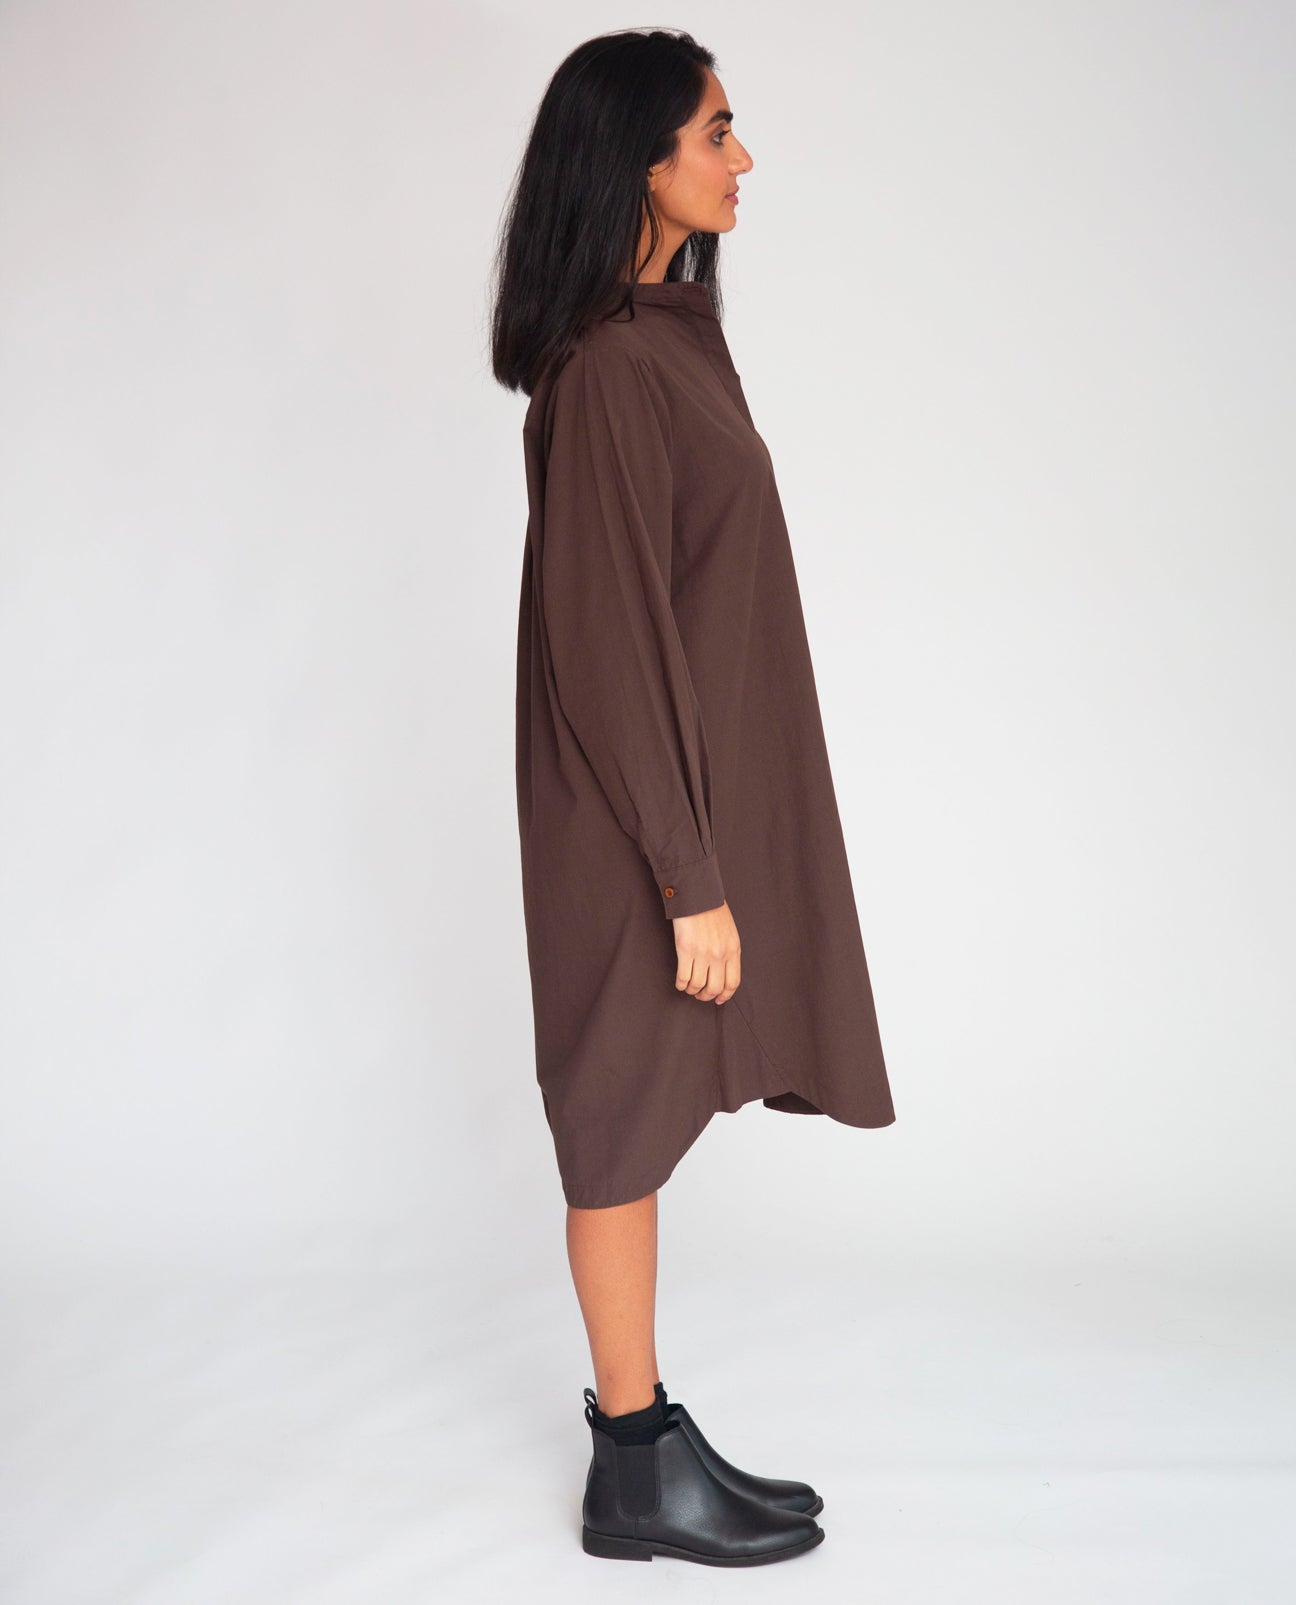 Ingrid Organic Cotton Dress In Chocolate